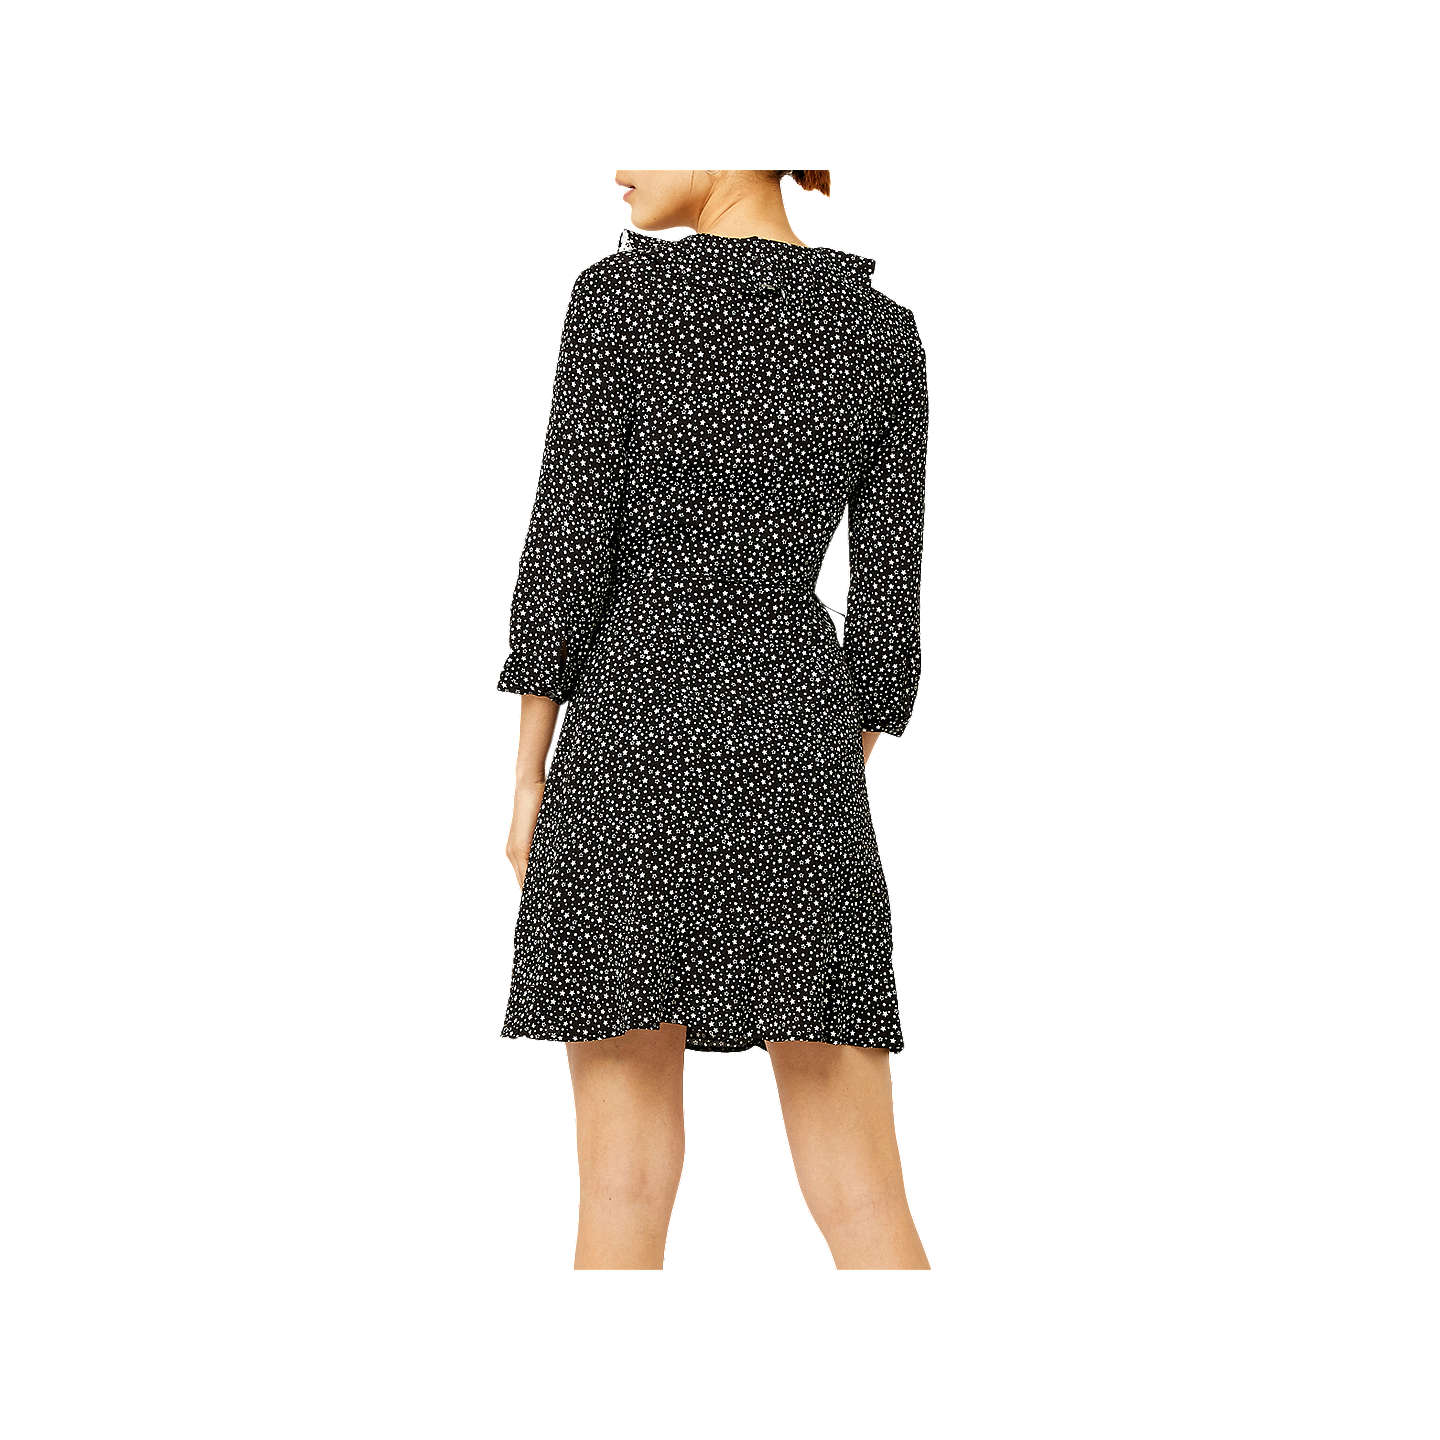 BuyWarehouse Ditsy and Star Print Flared Dress, Black, 6 Online at johnlewis.com